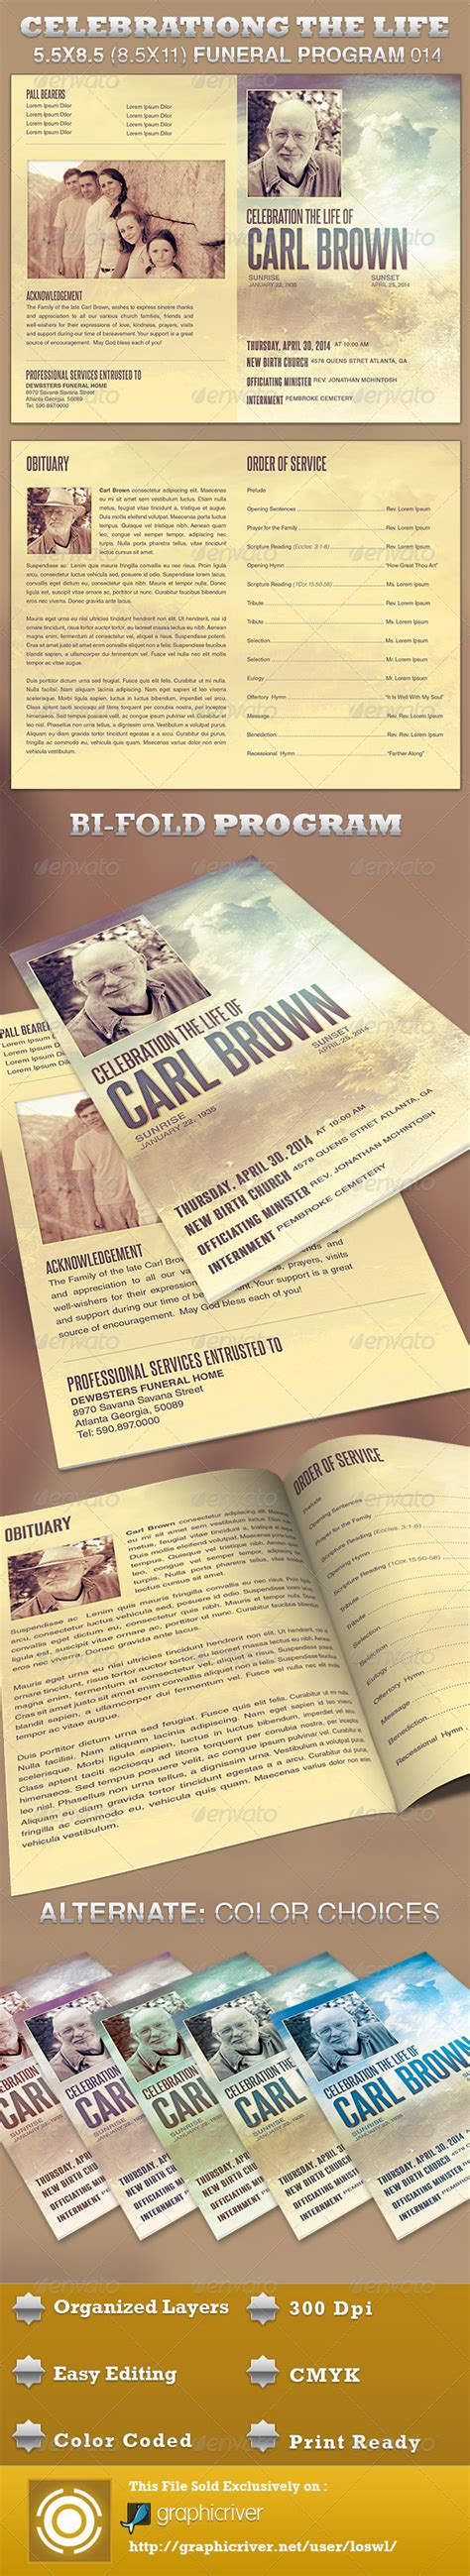 http graphicriver net item funeral service business card template 10998645 celebrating the funeral program template 014